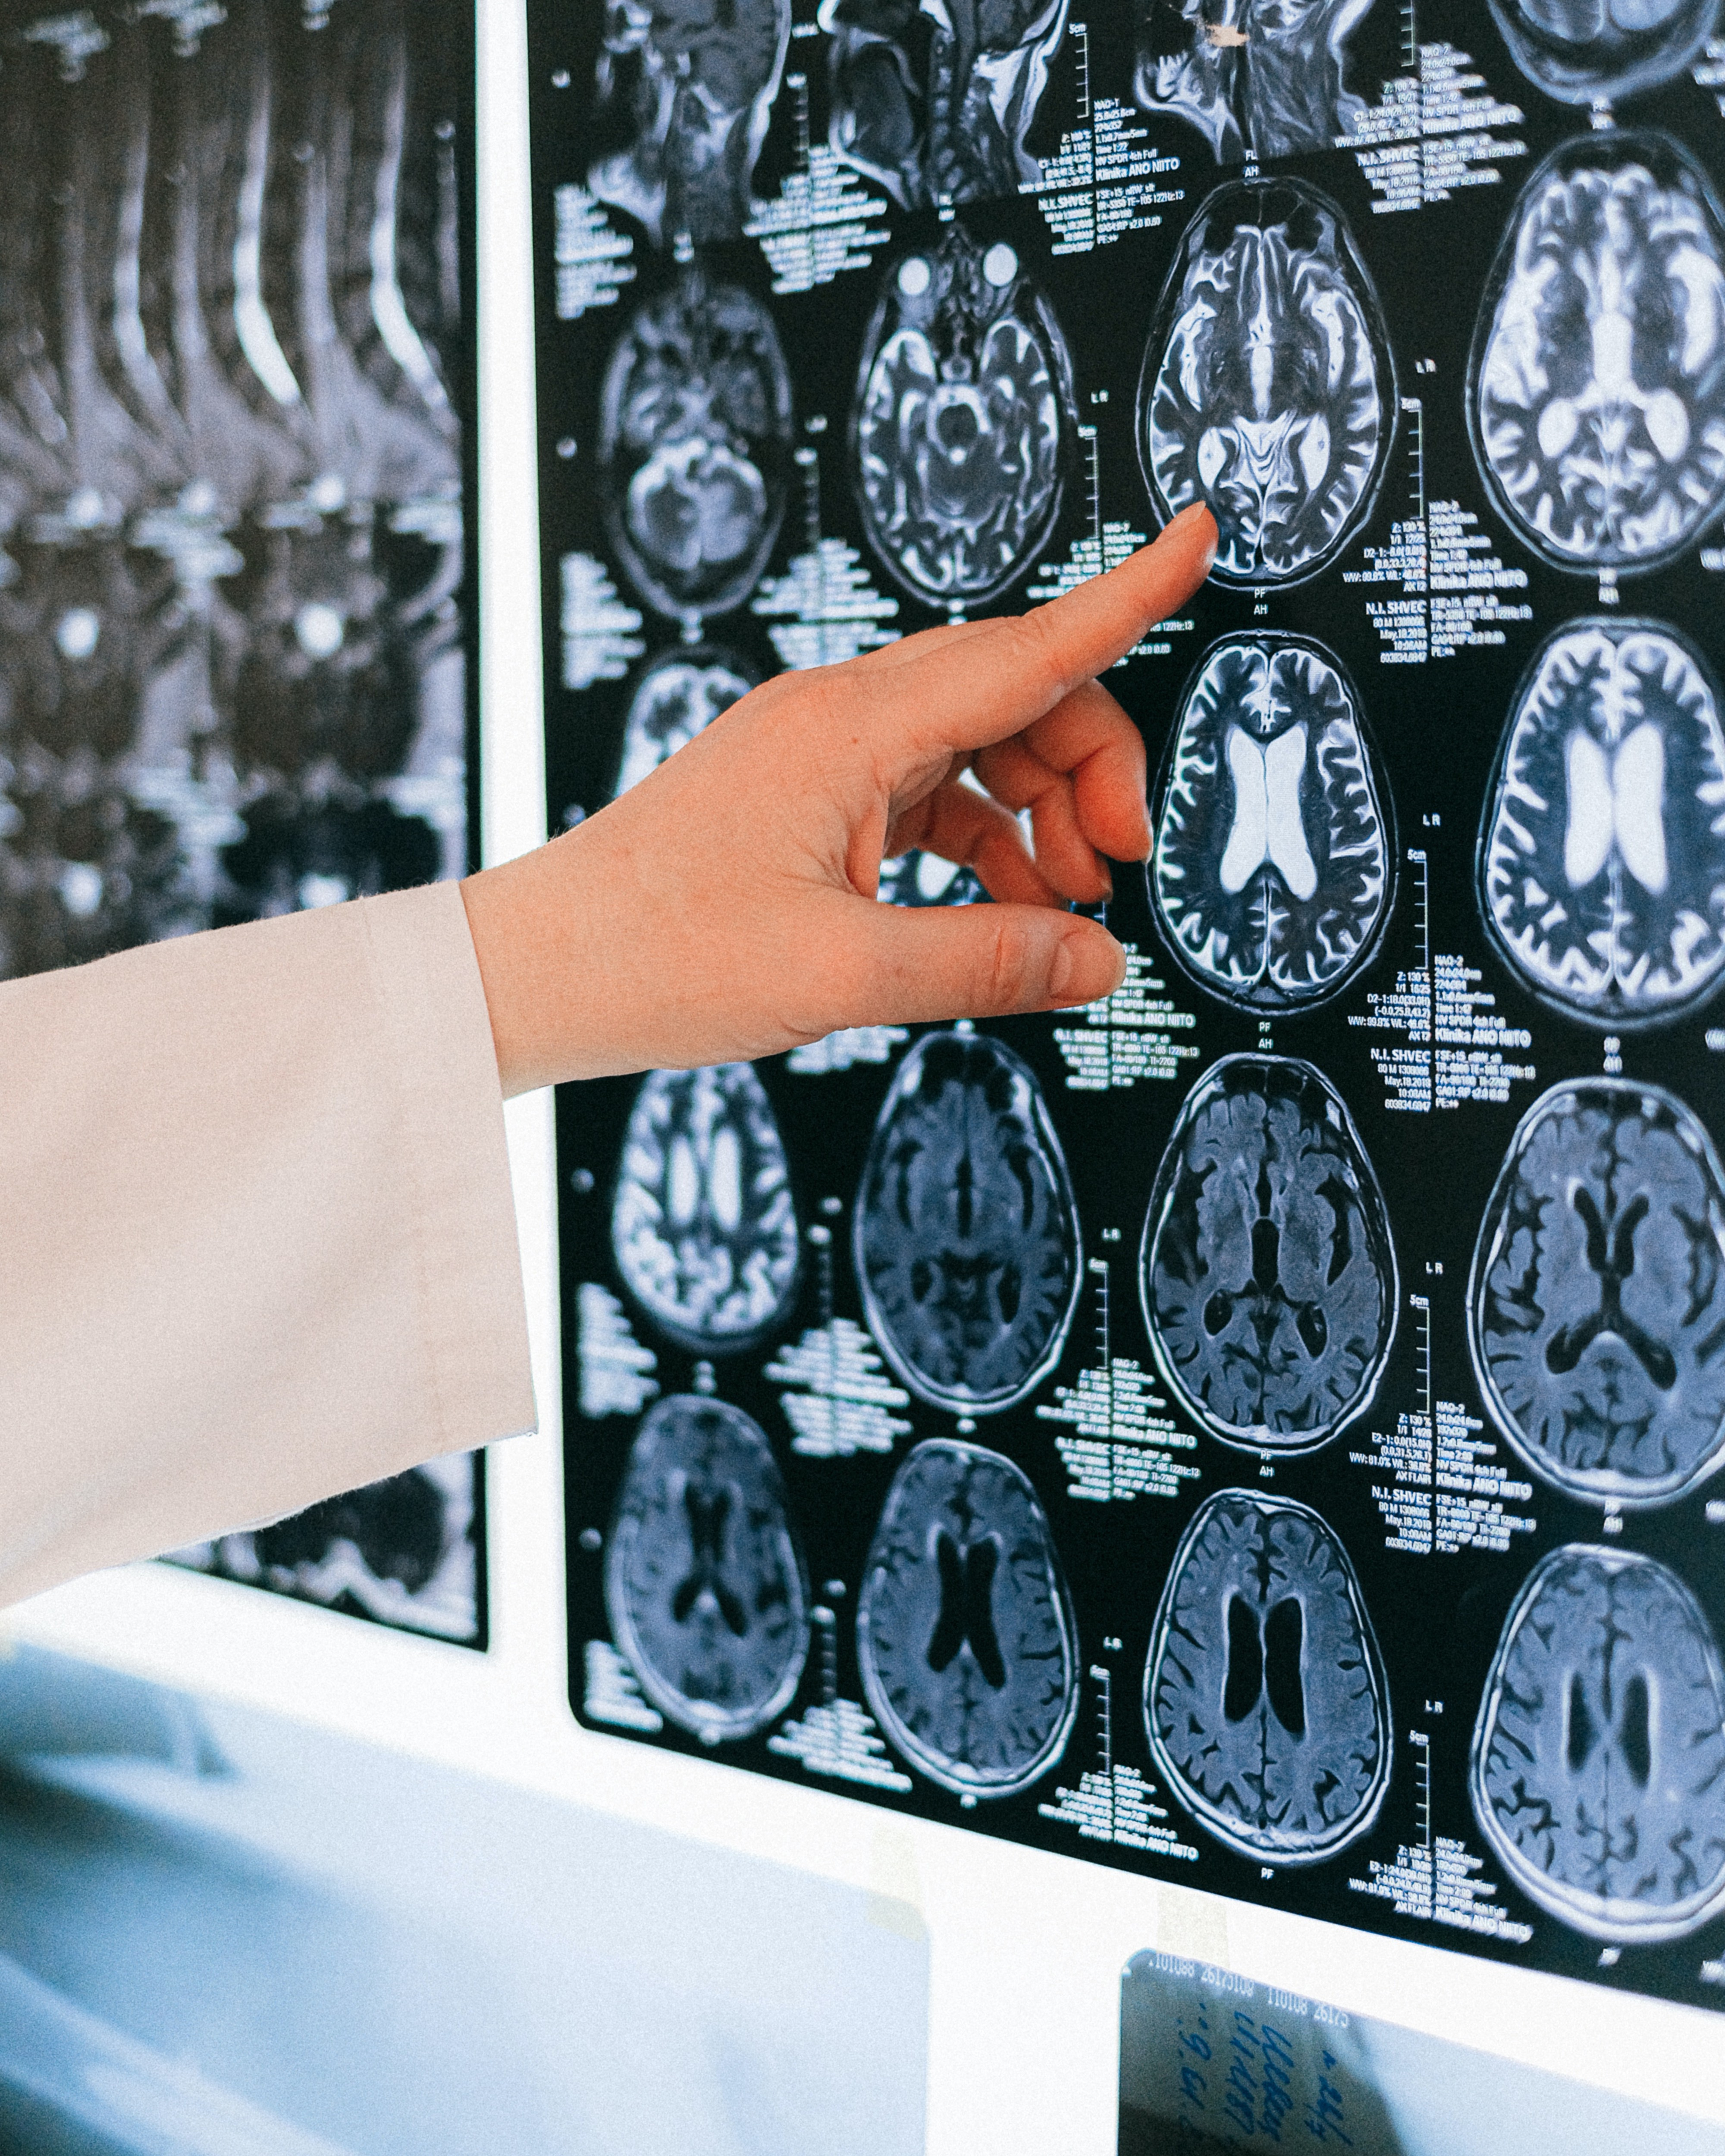 Several brain scans being reviewed by a doctor.